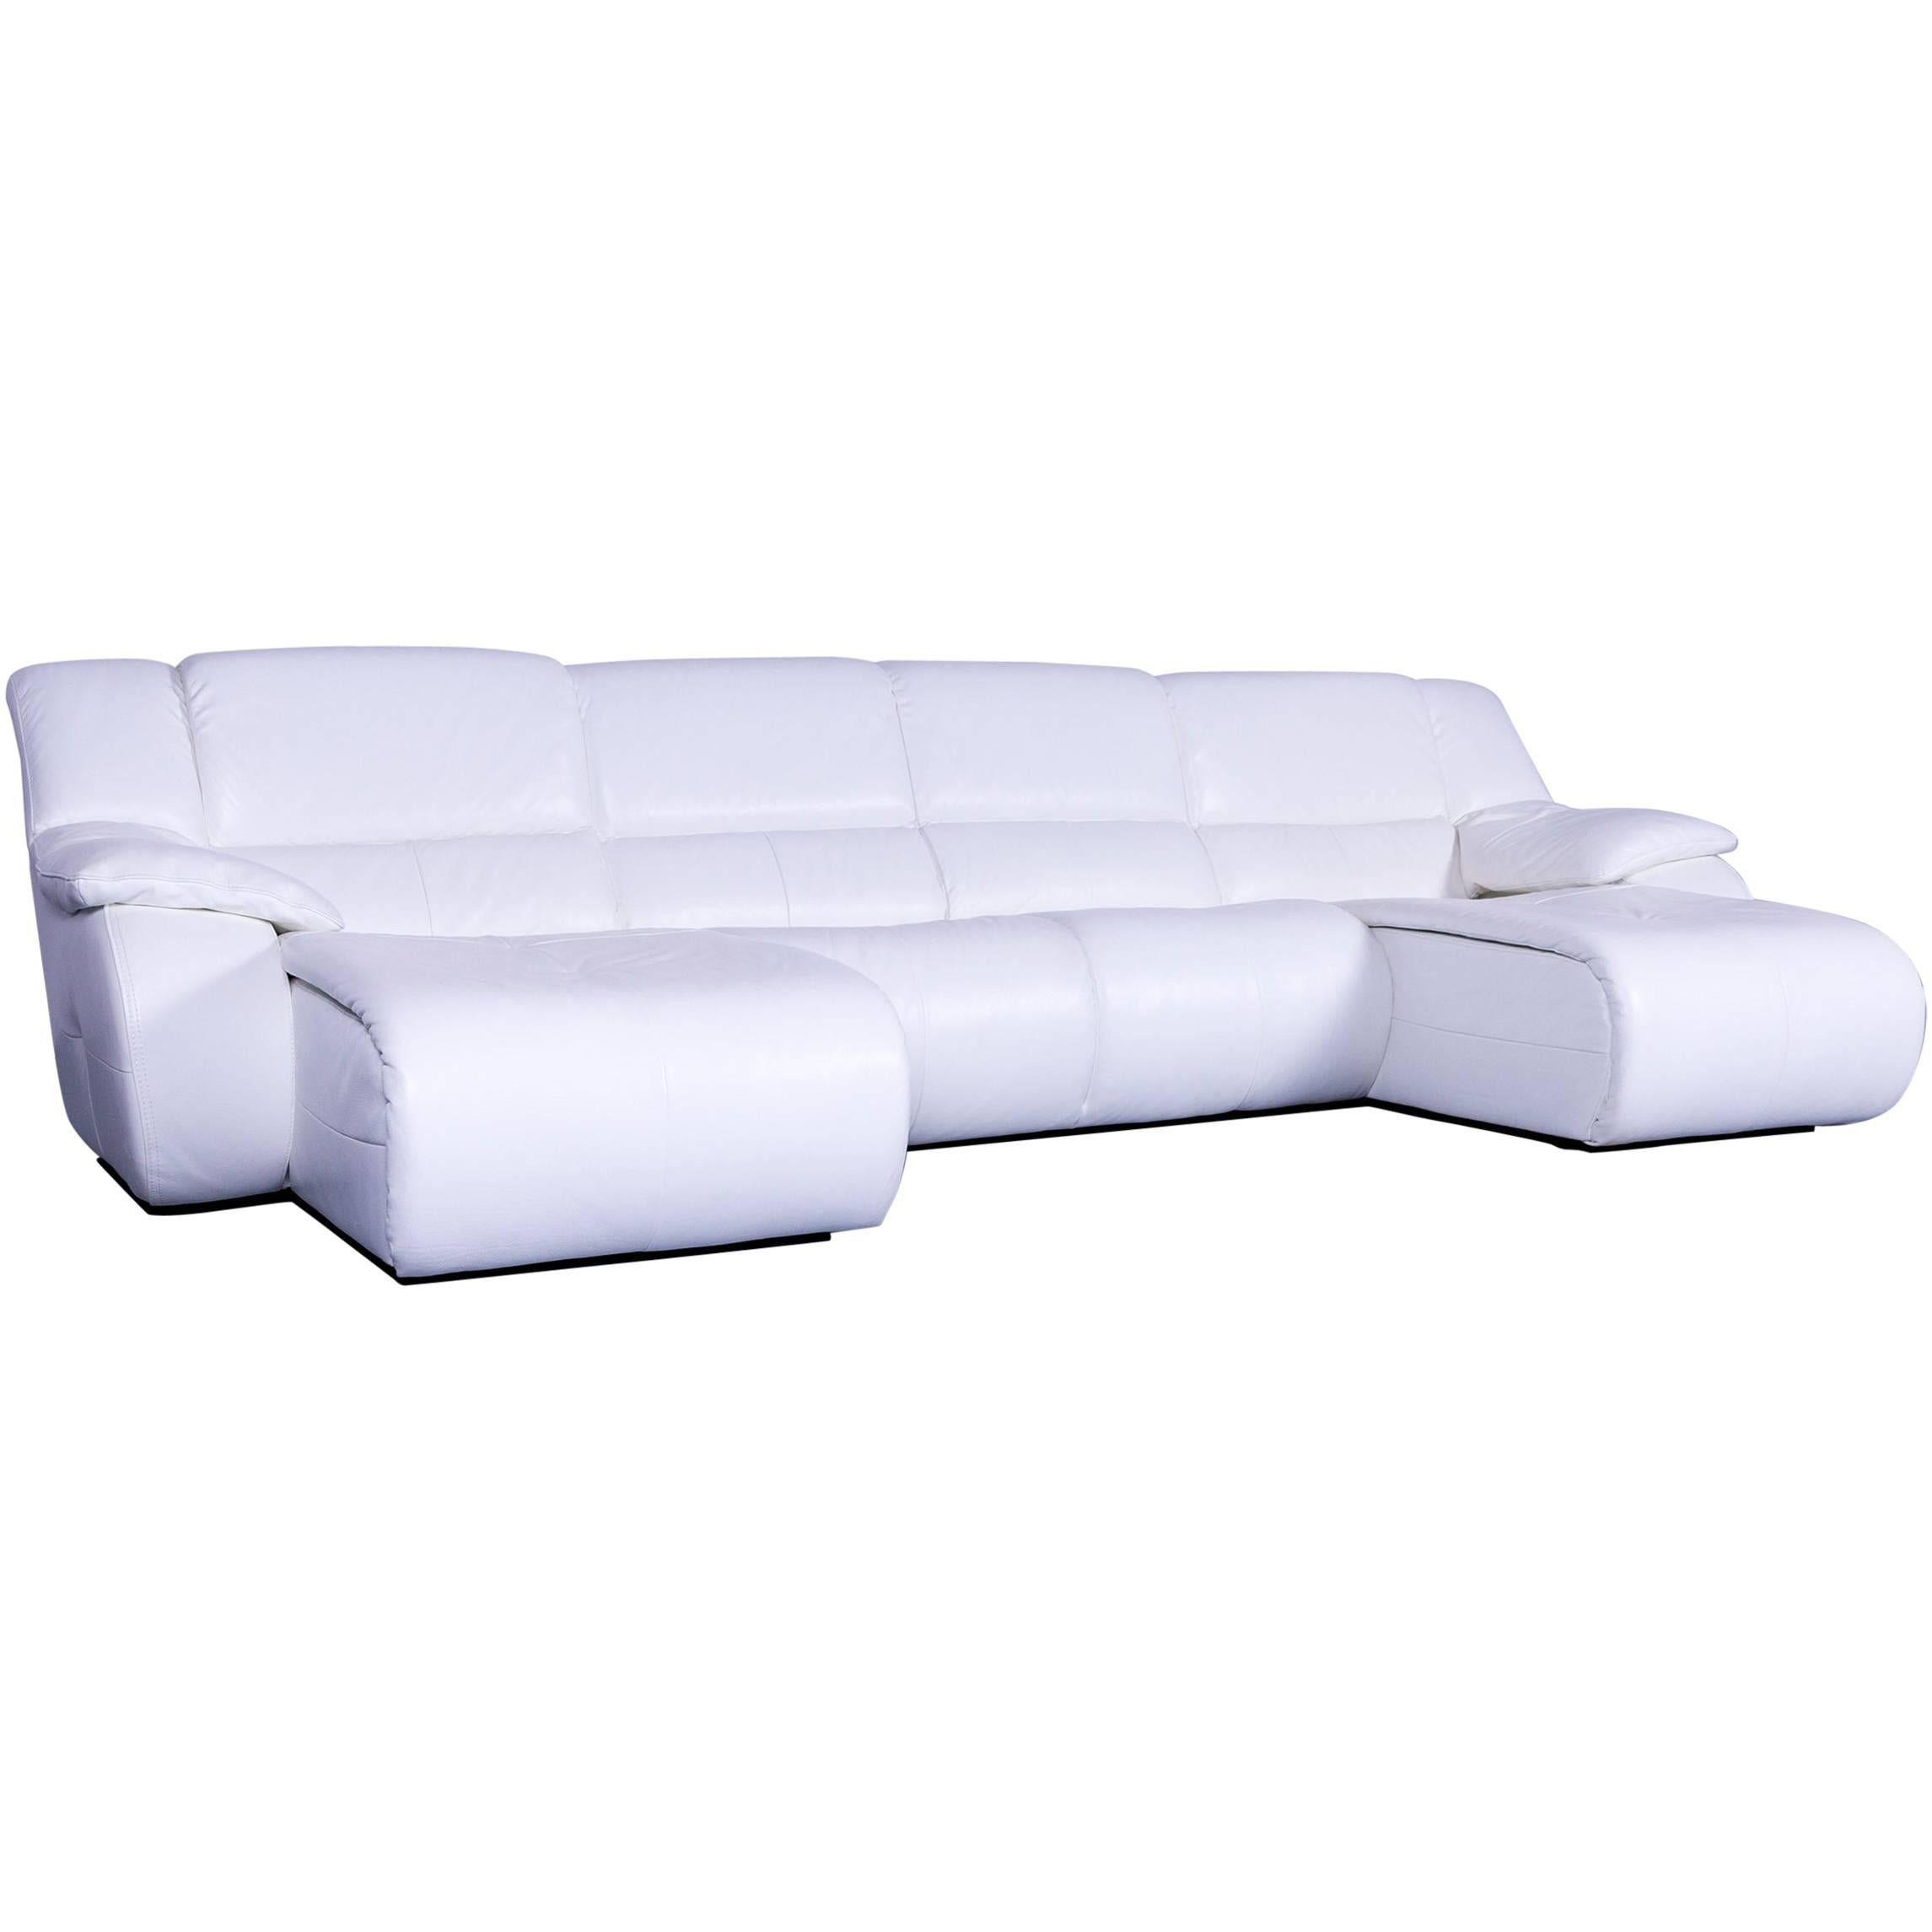 Chateau D`Ax Bamboo Leather Corner Sofa White Electric Recliner For Sale